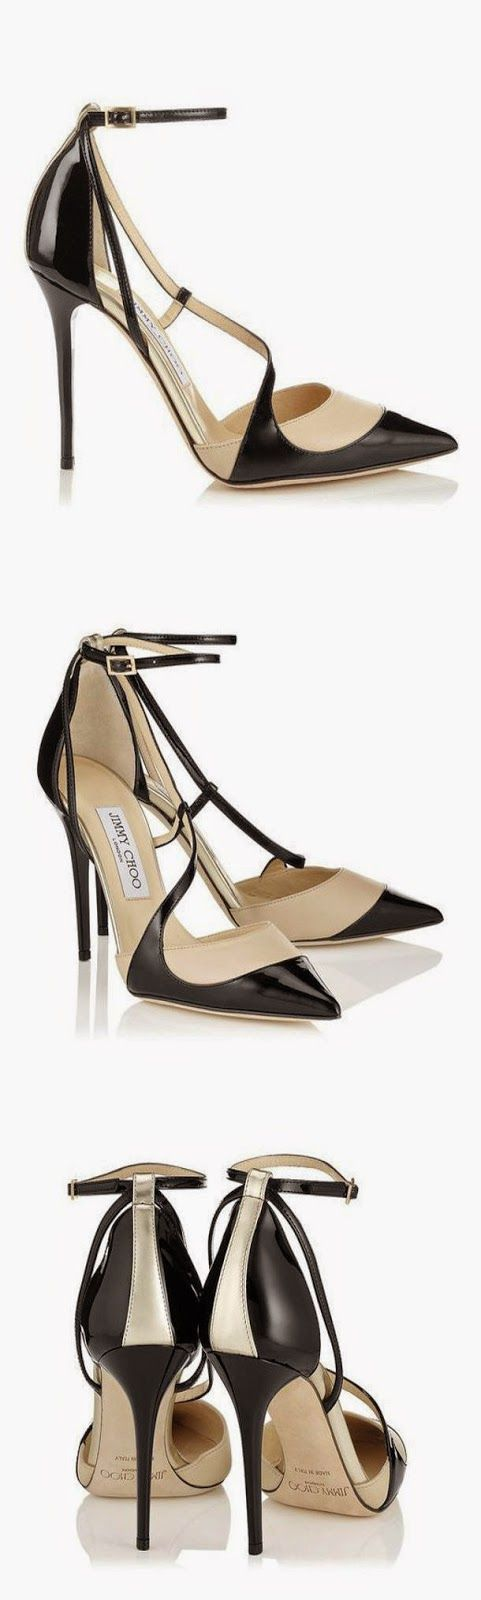 Emmy DE * Jimmy Choo MUTYA Cruise Collection 2015